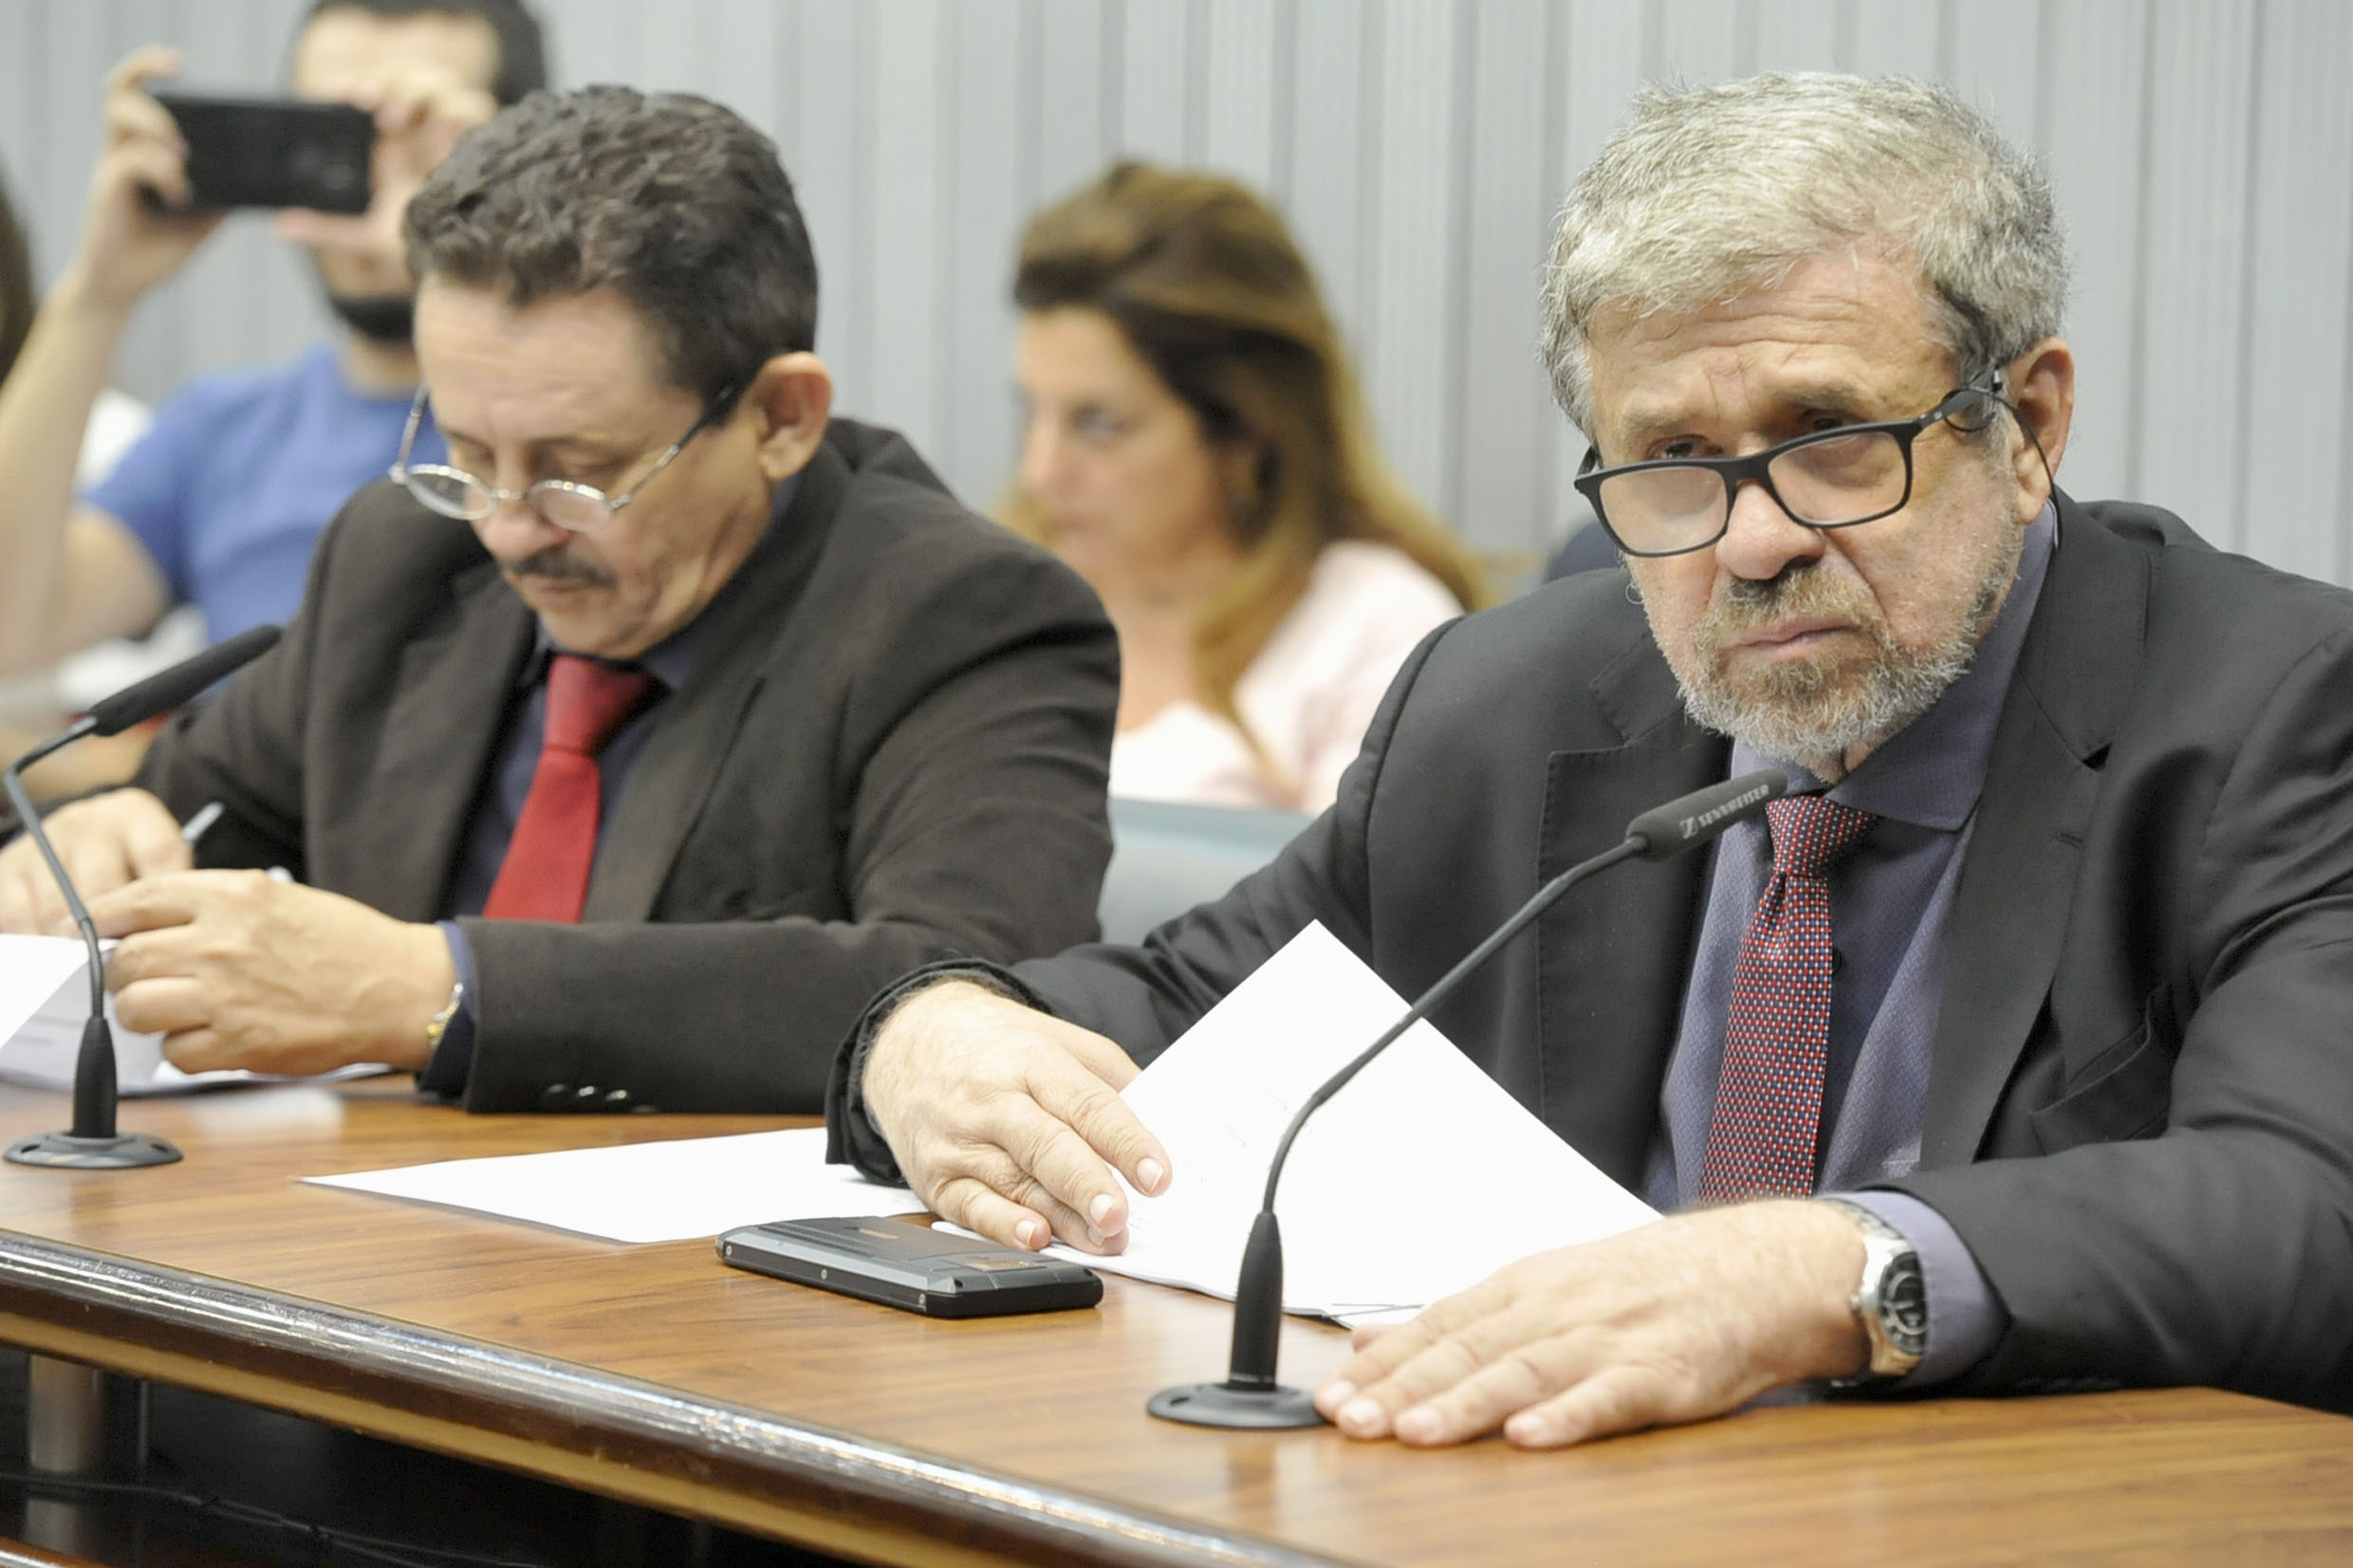 Parlamentares na comissão<a style='float:right' href='https://www3.al.sp.gov.br/repositorio/noticia/N-03-2019/fg231002.jpg' target=_blank><img src='/_img/material-file-download-white.png' width='14px' alt='Clique para baixar a imagem'></a>